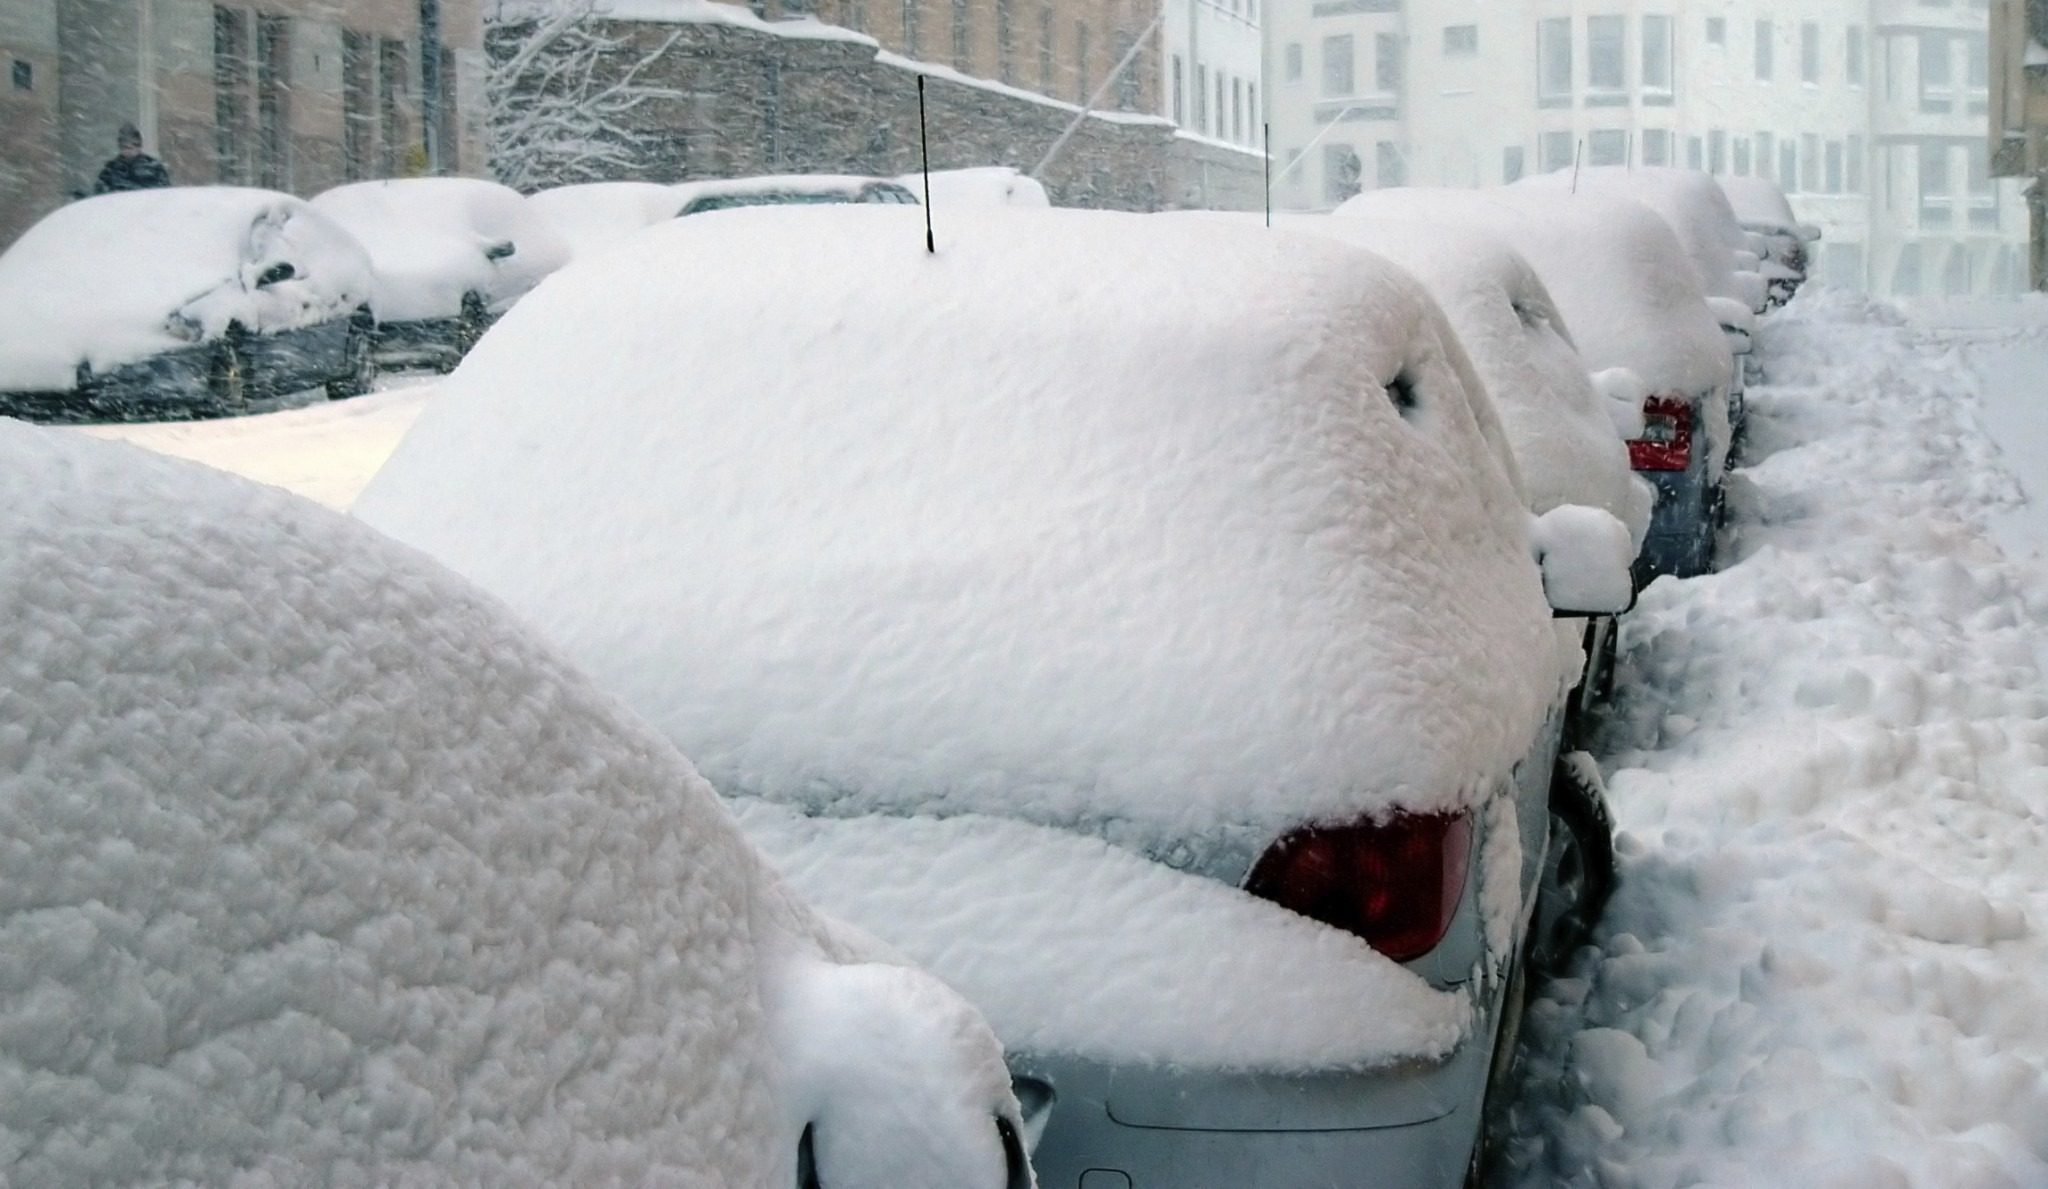 Winter Dibs: The Reasons That Shoveling Makes That Parking Space Yours